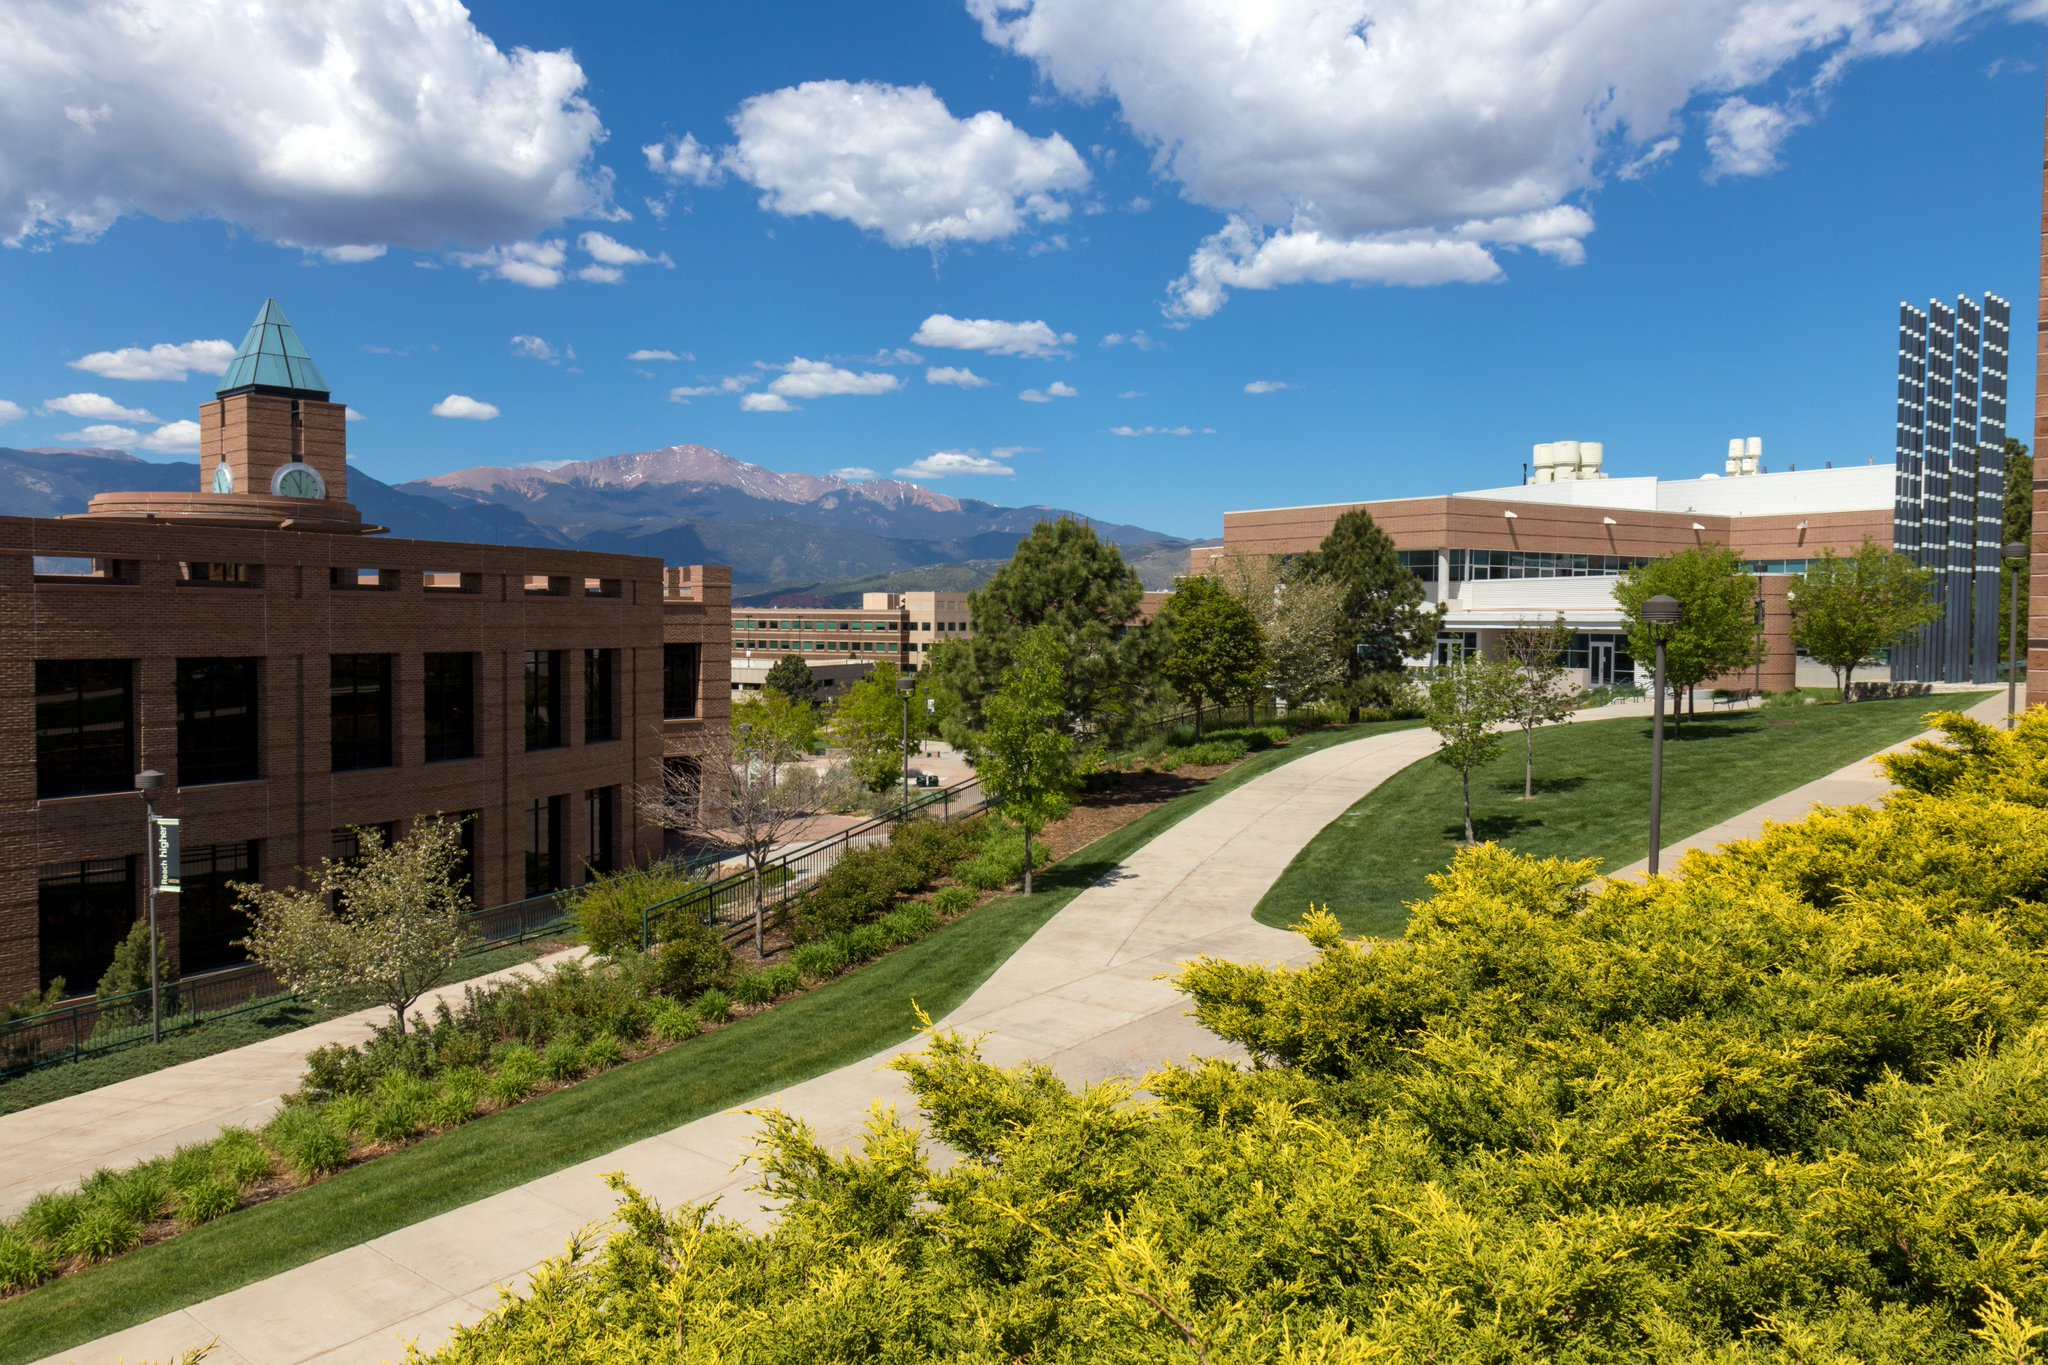 Uccs Kraemer Library On Twitter It S Such A Nice Day On The Uccs Campus Uccs Coloradosprings 1,769 likes · 2,184 were here. twitter